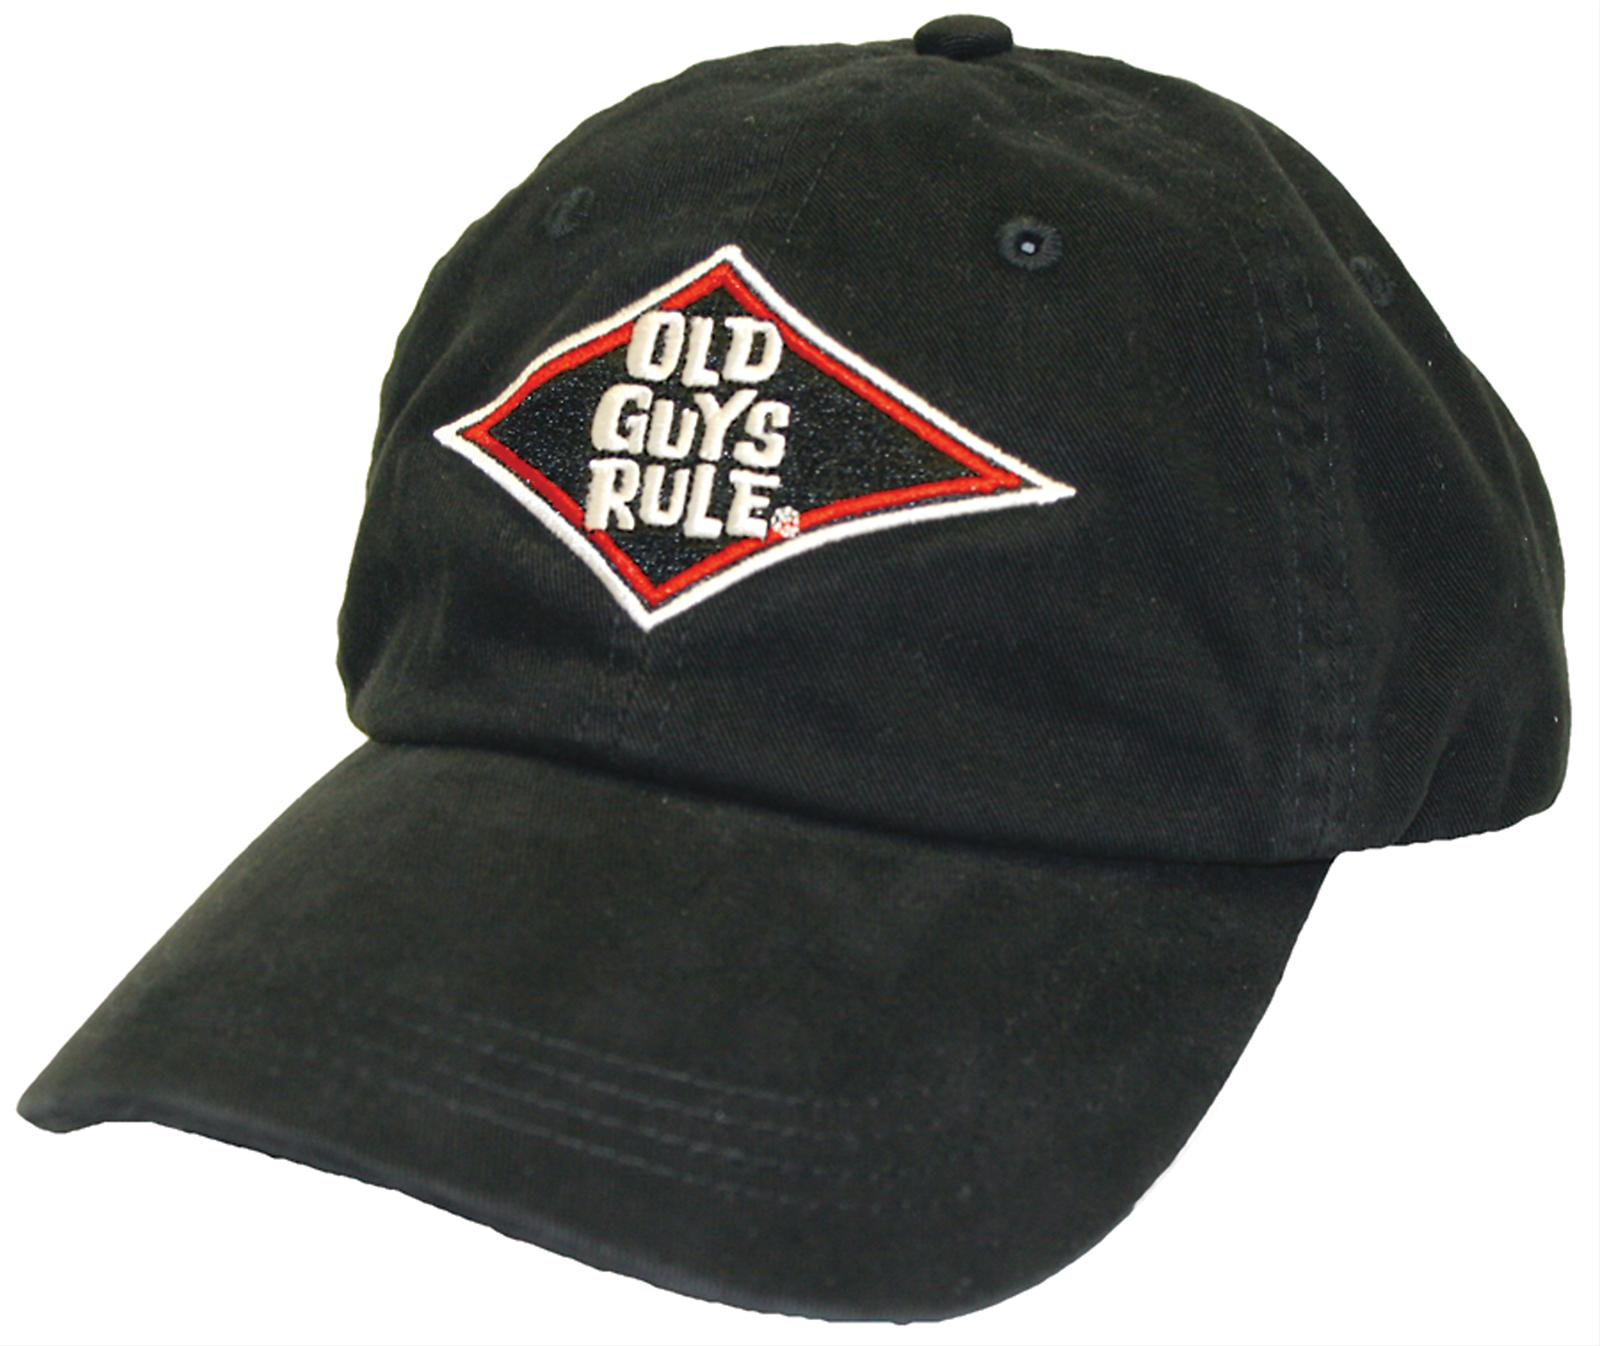 Old Guys Rule Diamond Logo Cap 309A715BLK - Free Shipping on Orders Over $99 at Summit Racing